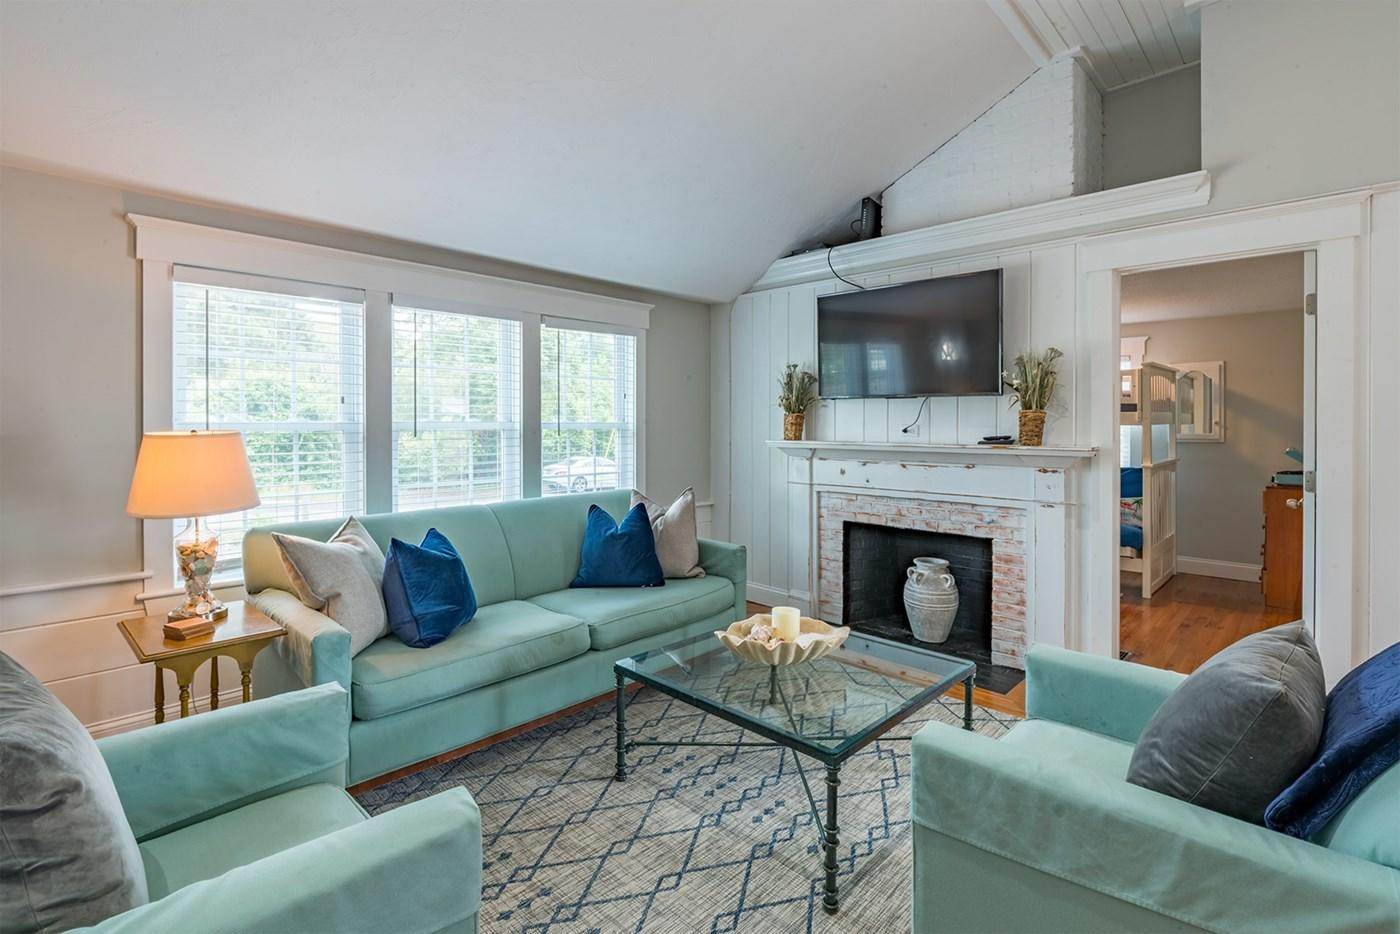 5 Water Street, West Yarmouth MA, 02673 details